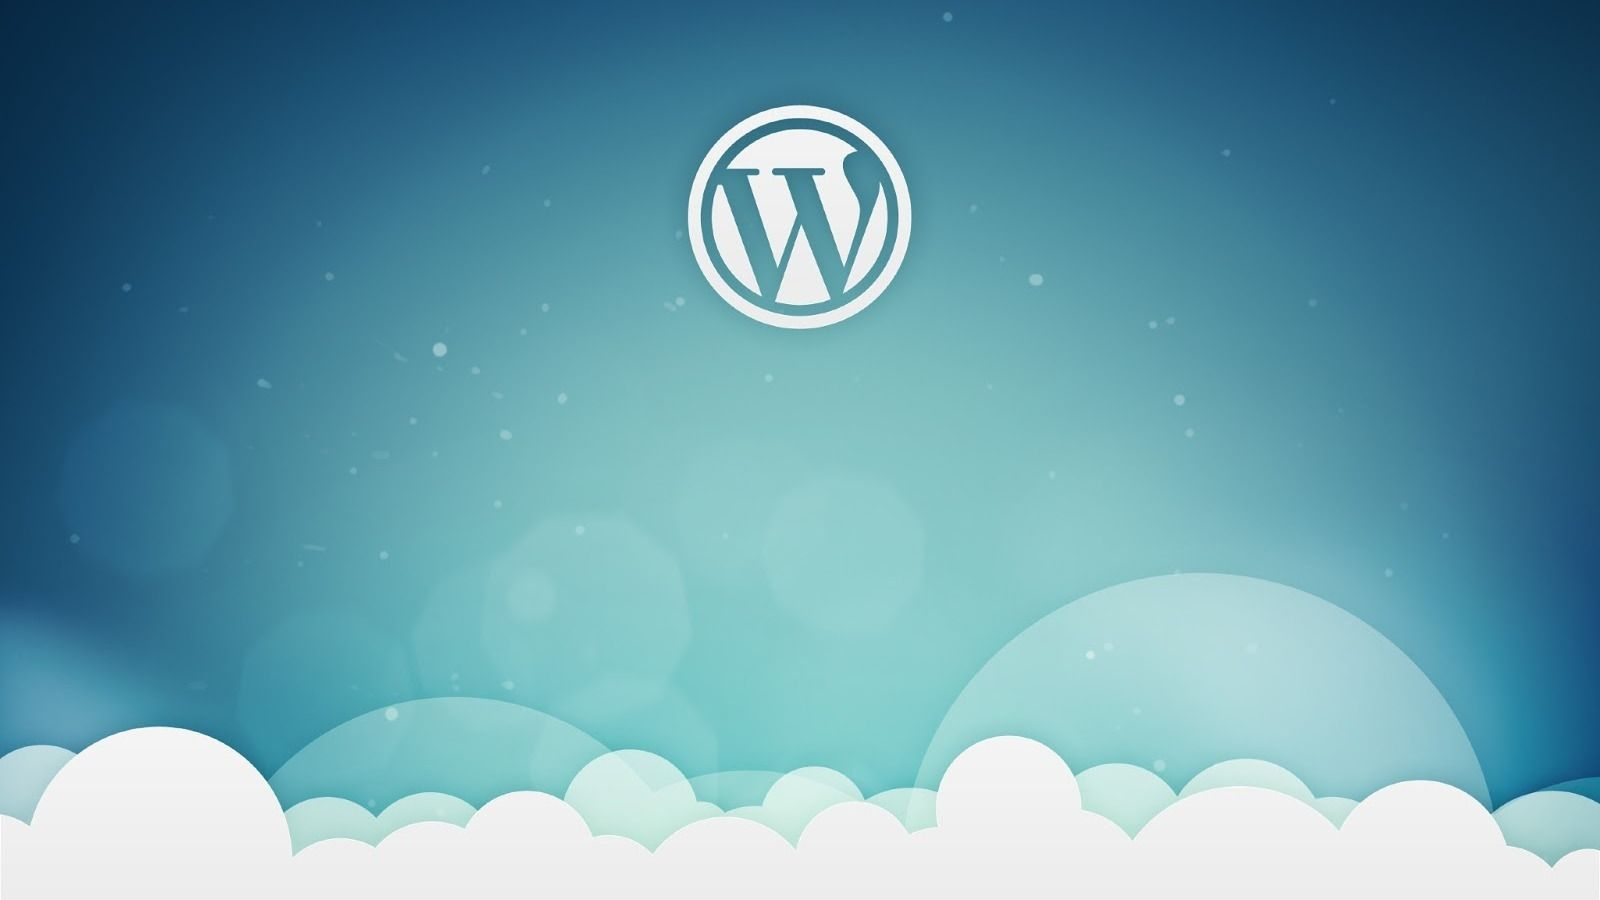 WordPress Bordeaux